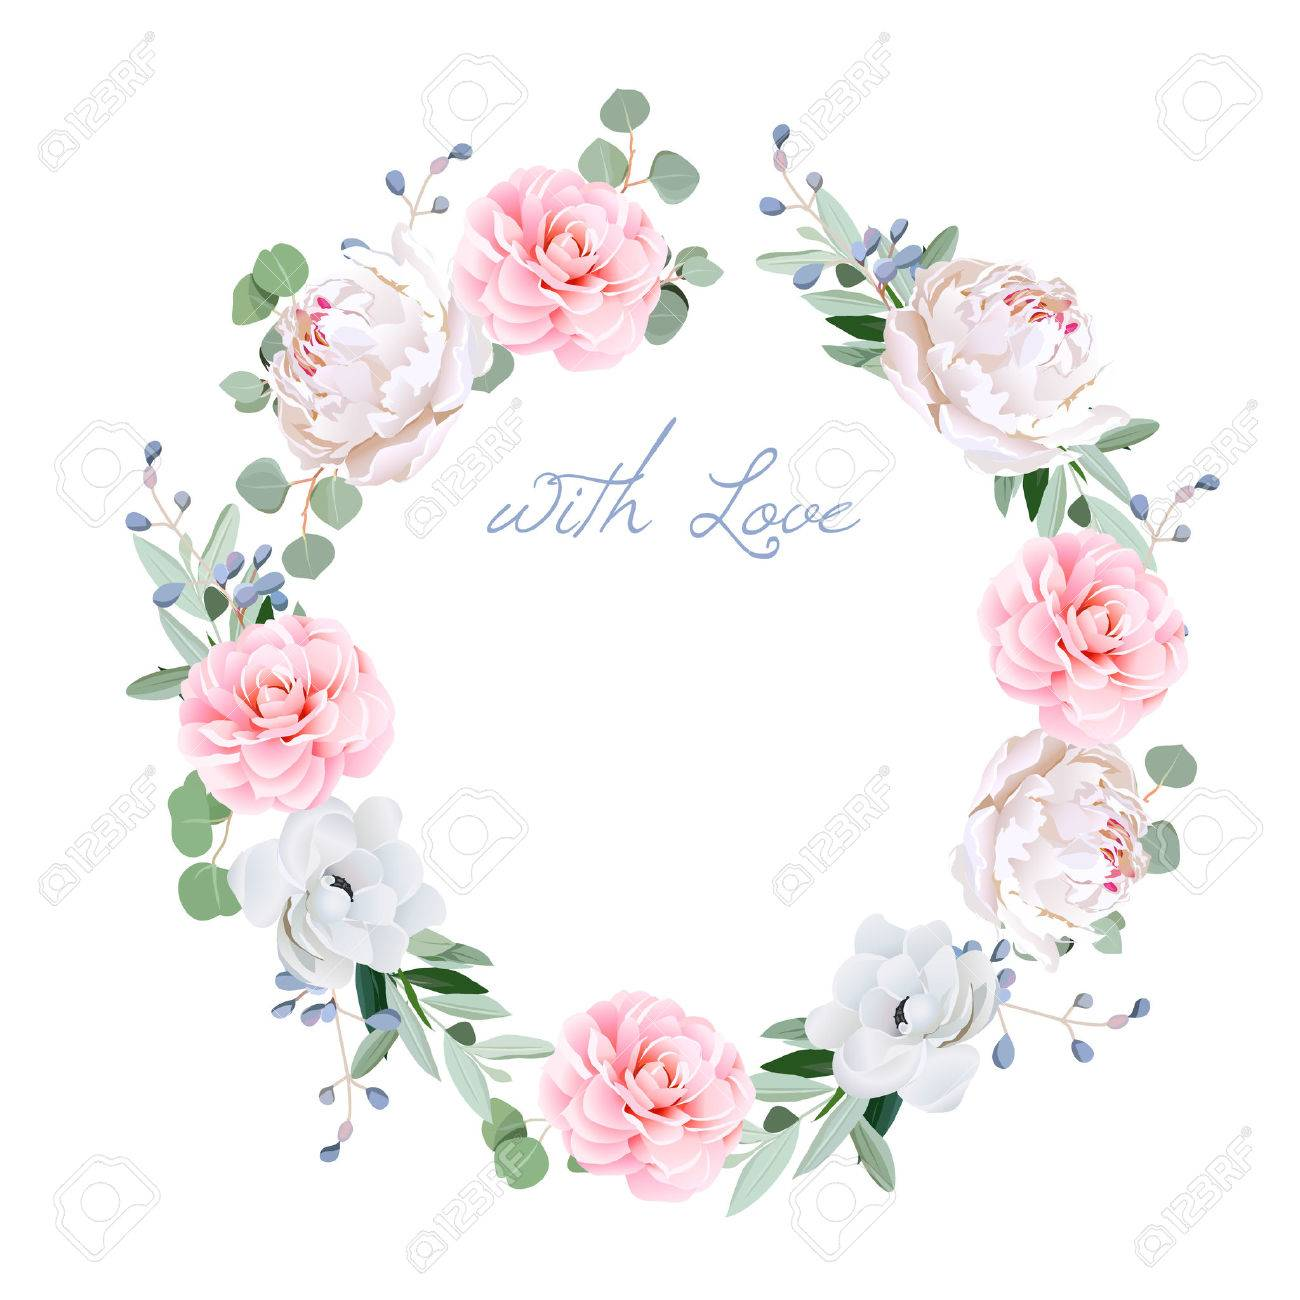 Spring fresh peony, anemone, camellia, brunia flowers and eucaliptis leaves round frame. All elements are isolated and editable. - 54494281